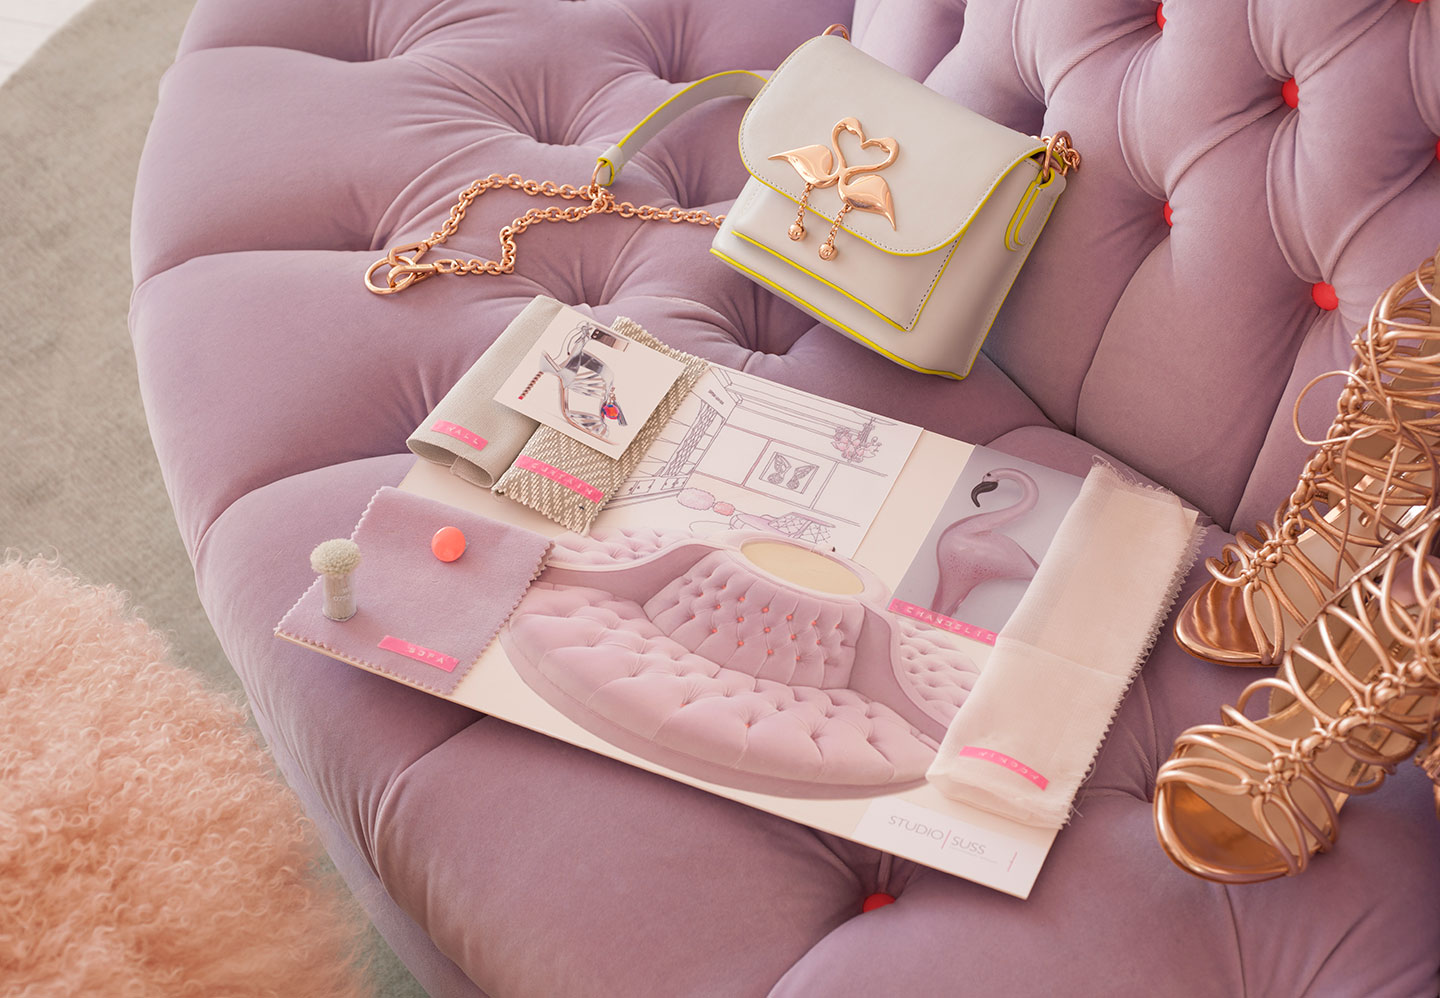 A Sophia Webster handbag and show sit next to the interior design sketches for the showroom